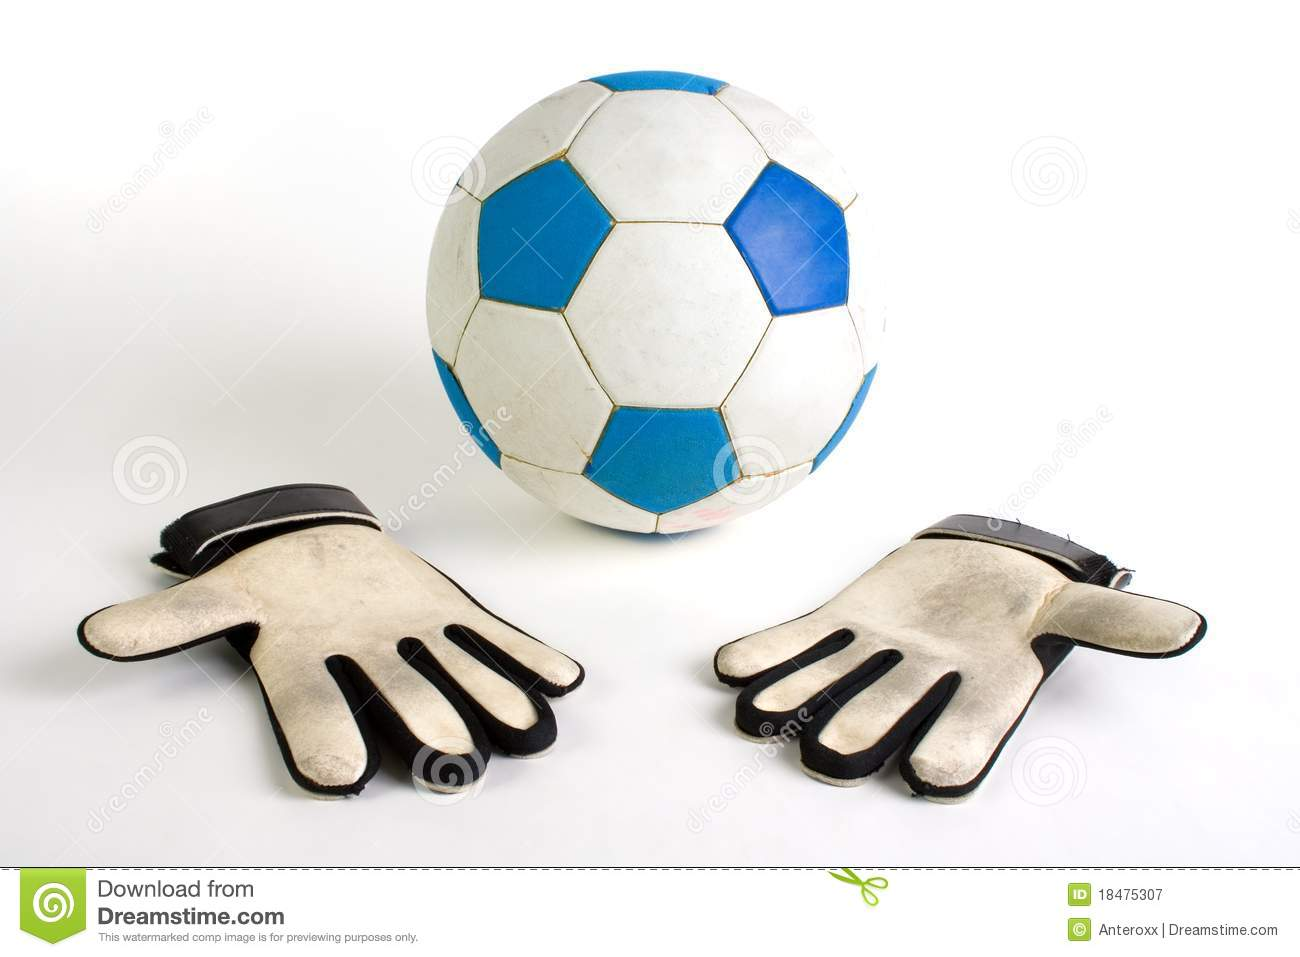 cool soccer goalie pictures